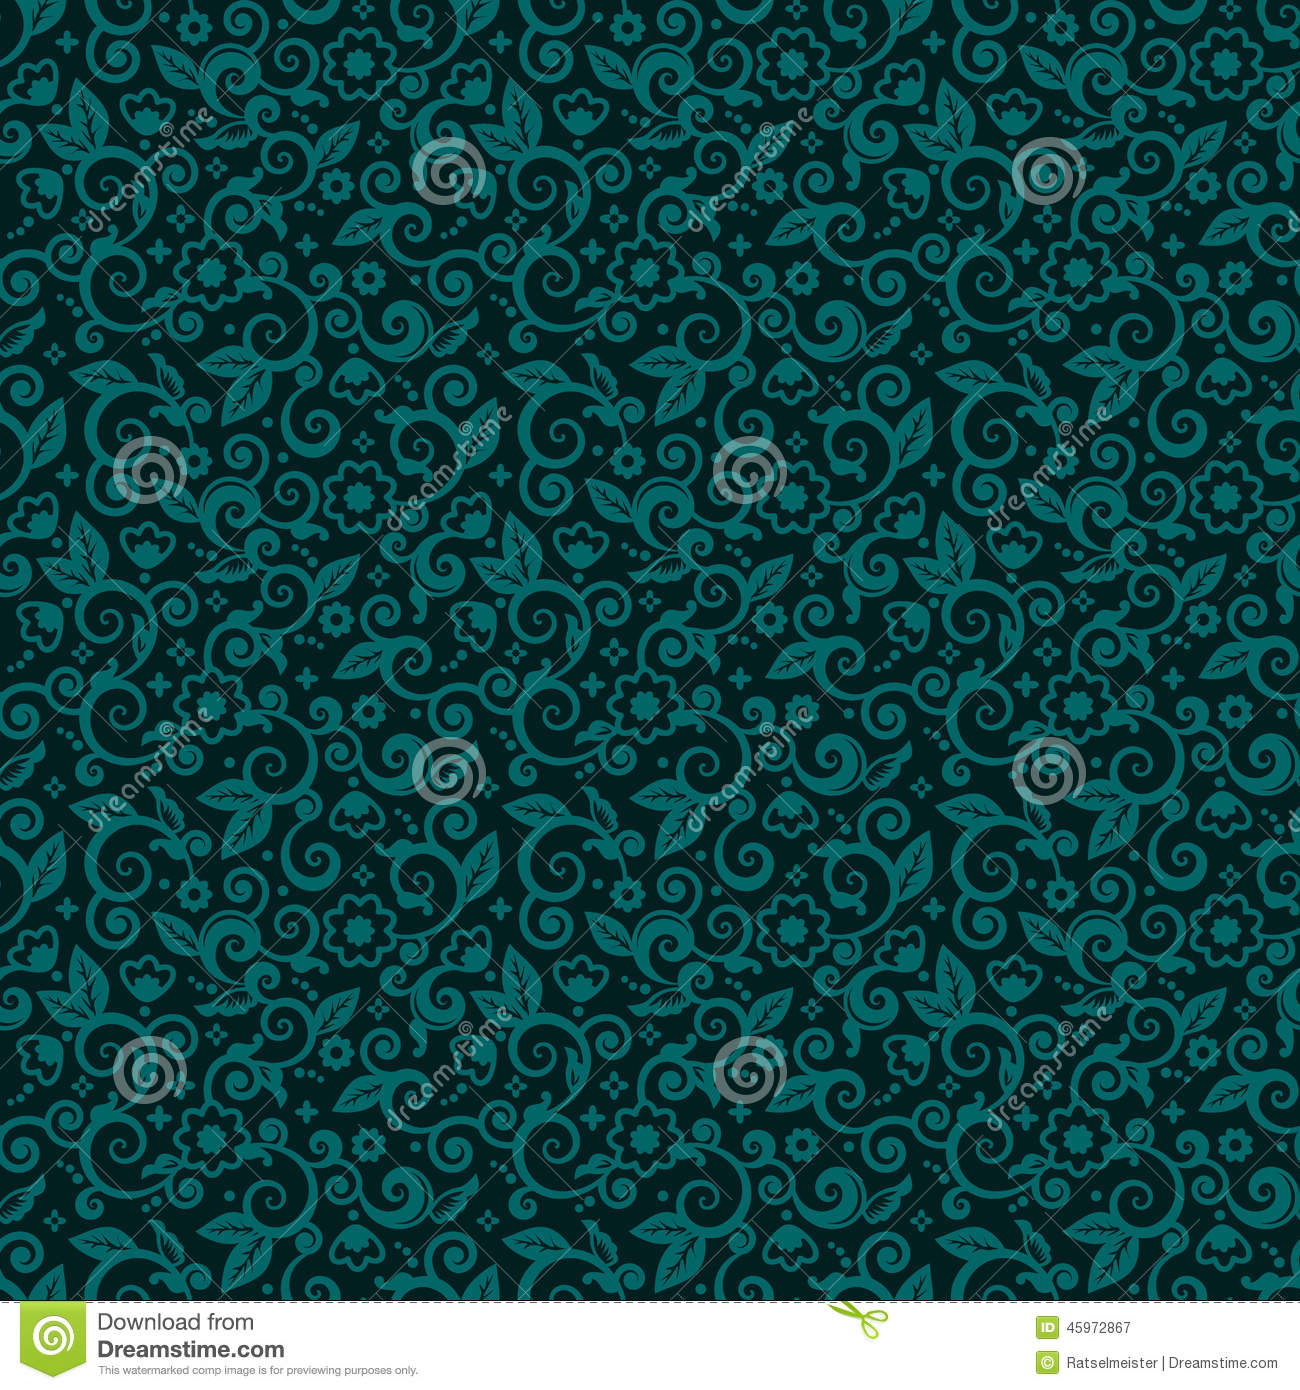 Seamless Swirly Floral Background Of Dark Turquoise Winter Holidays Colors